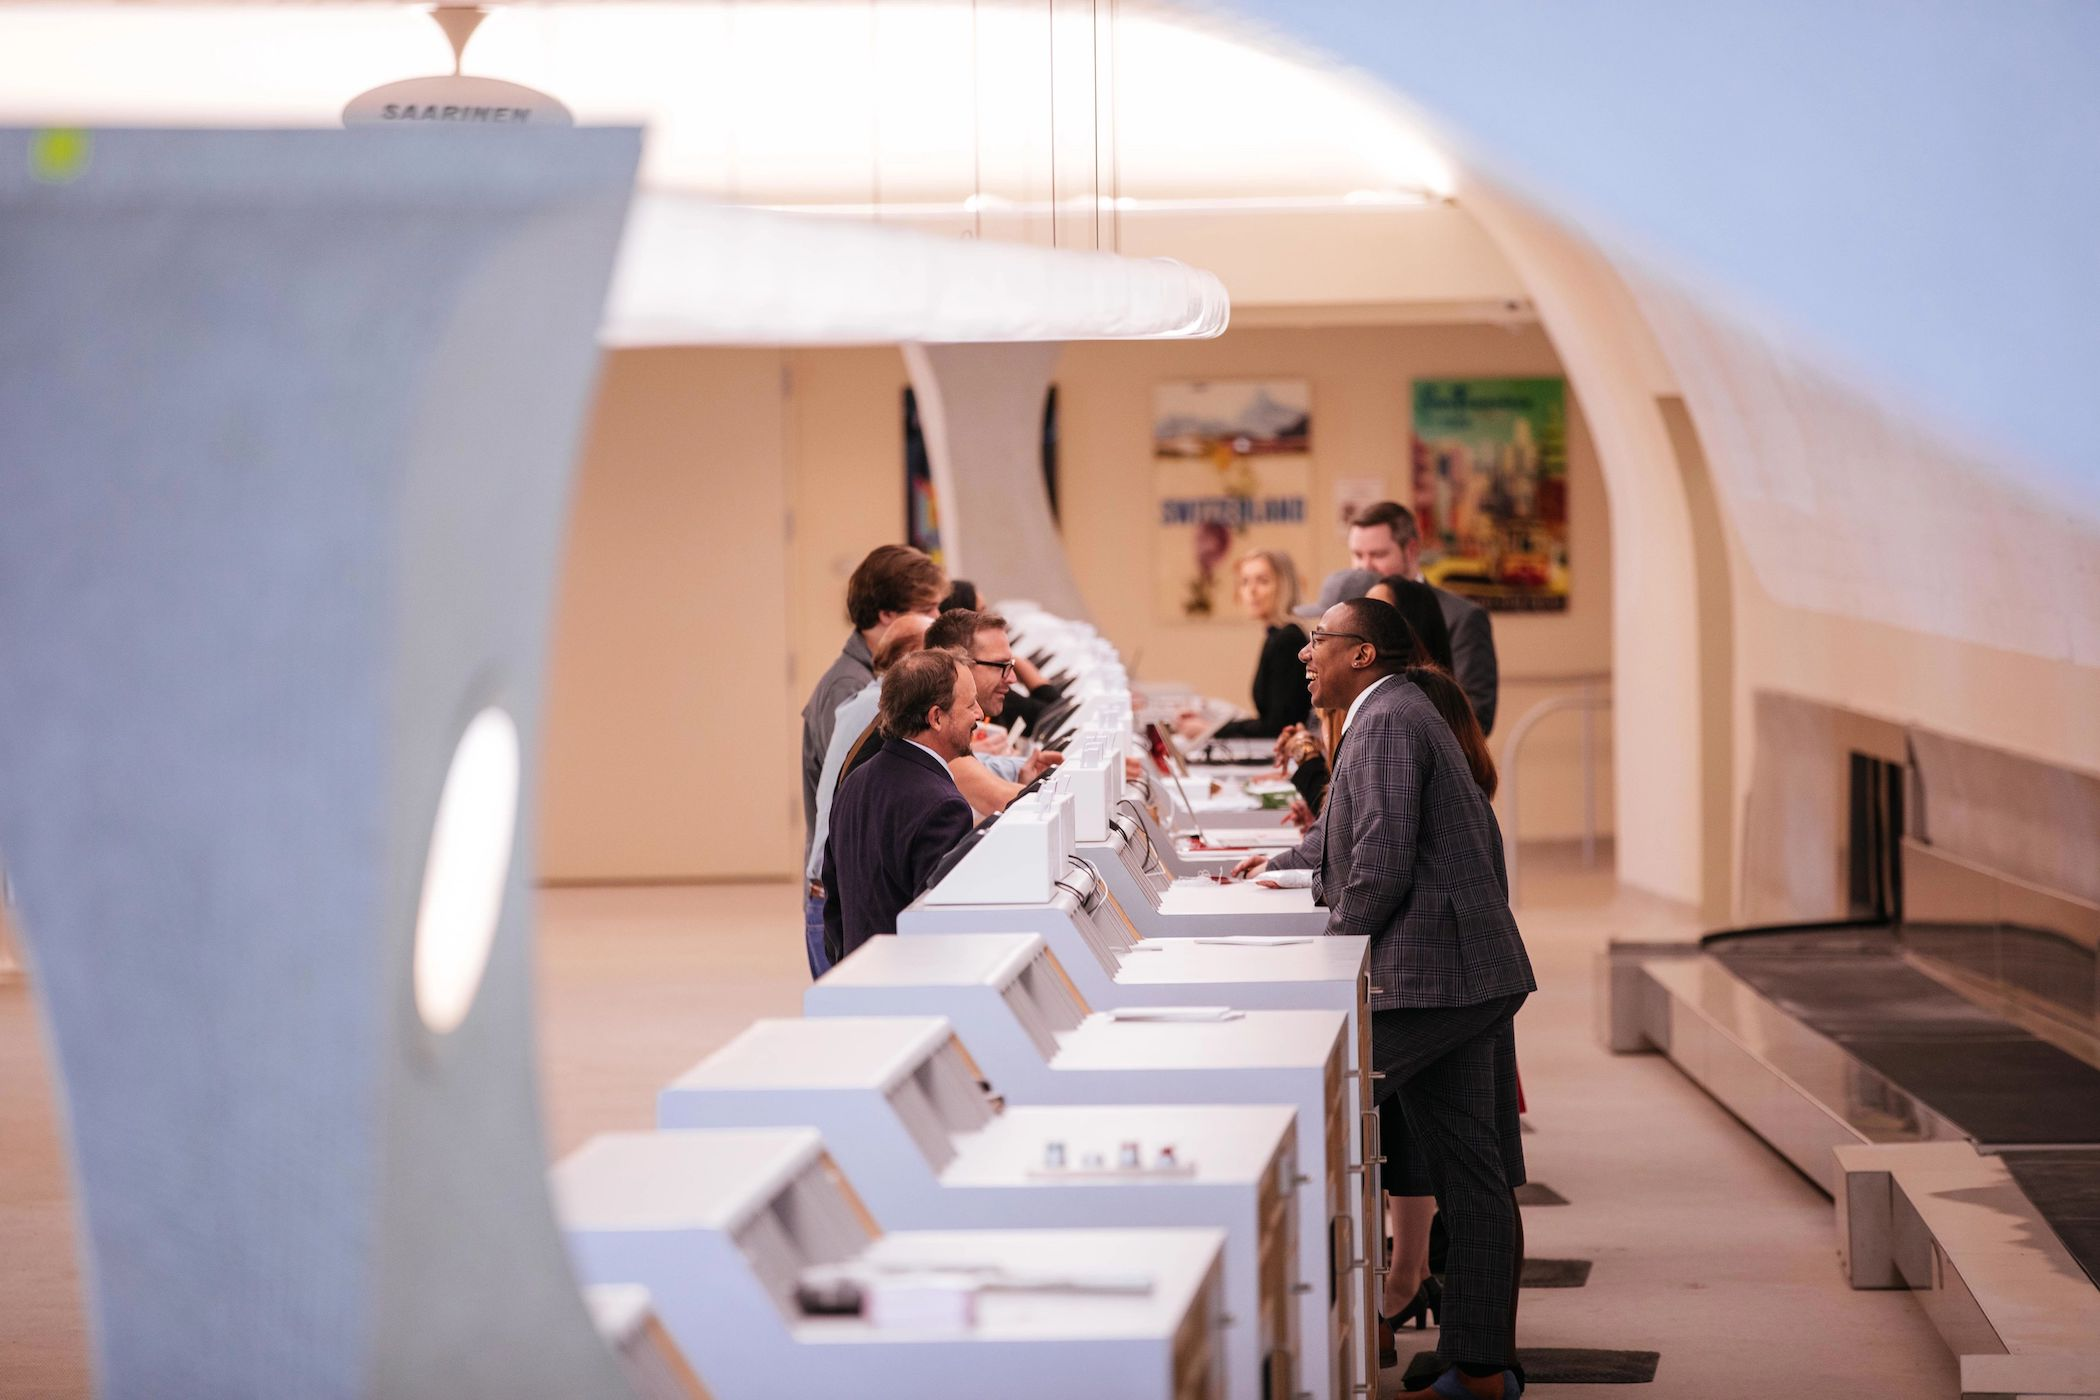 The average occupancy of U.S. hotels increased for another week. (Getty Images)